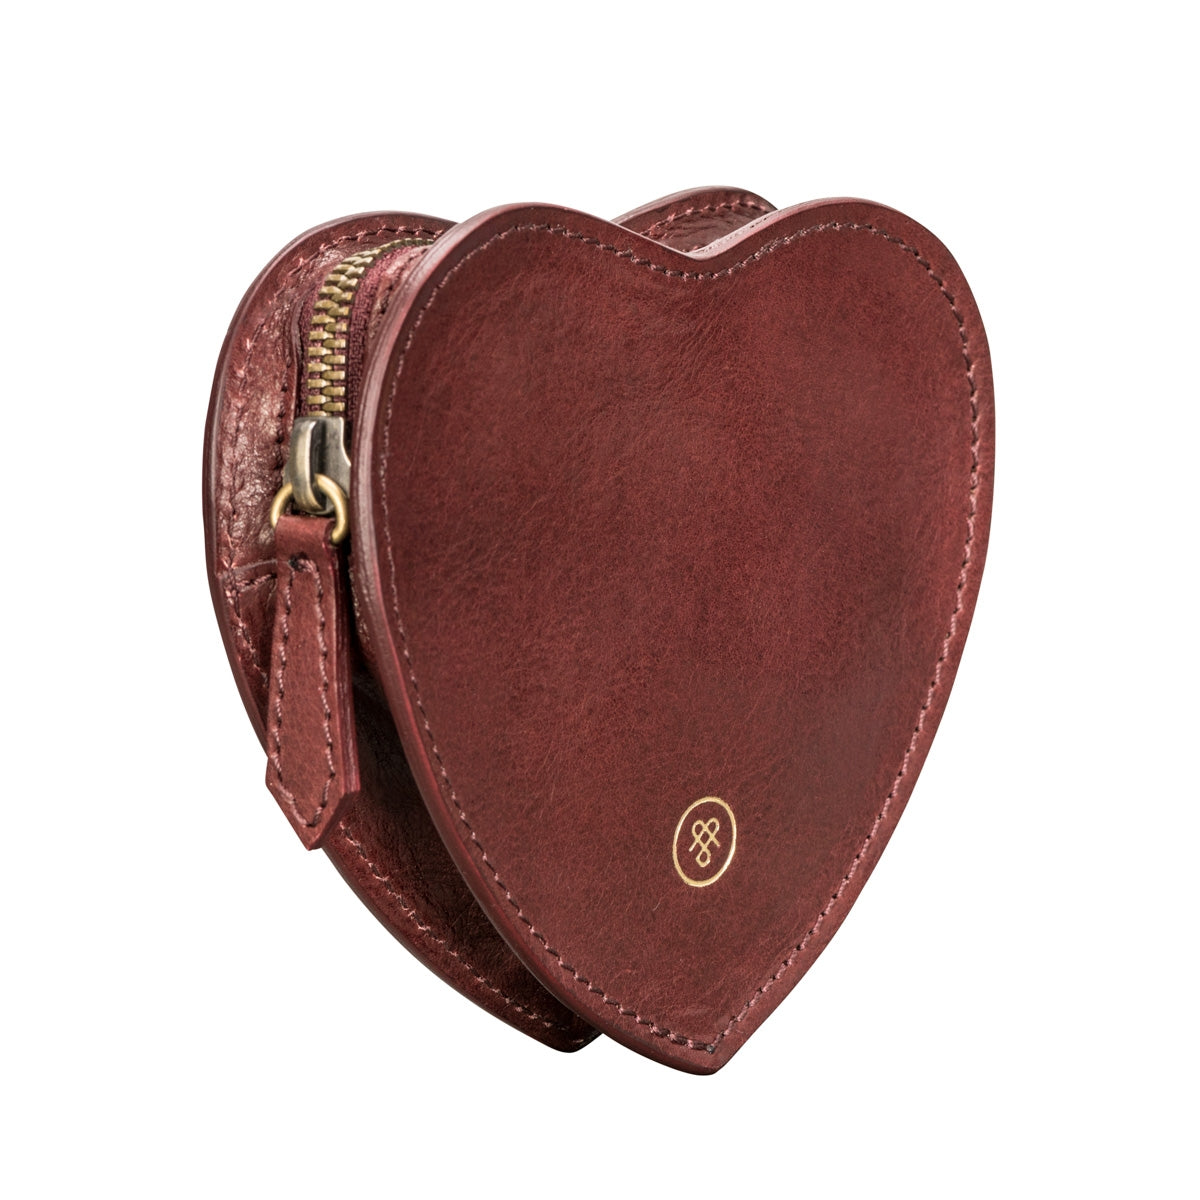 Image 2 of the 'MirabellaL' Wine Leather Heart-shaped Handbag Organiser